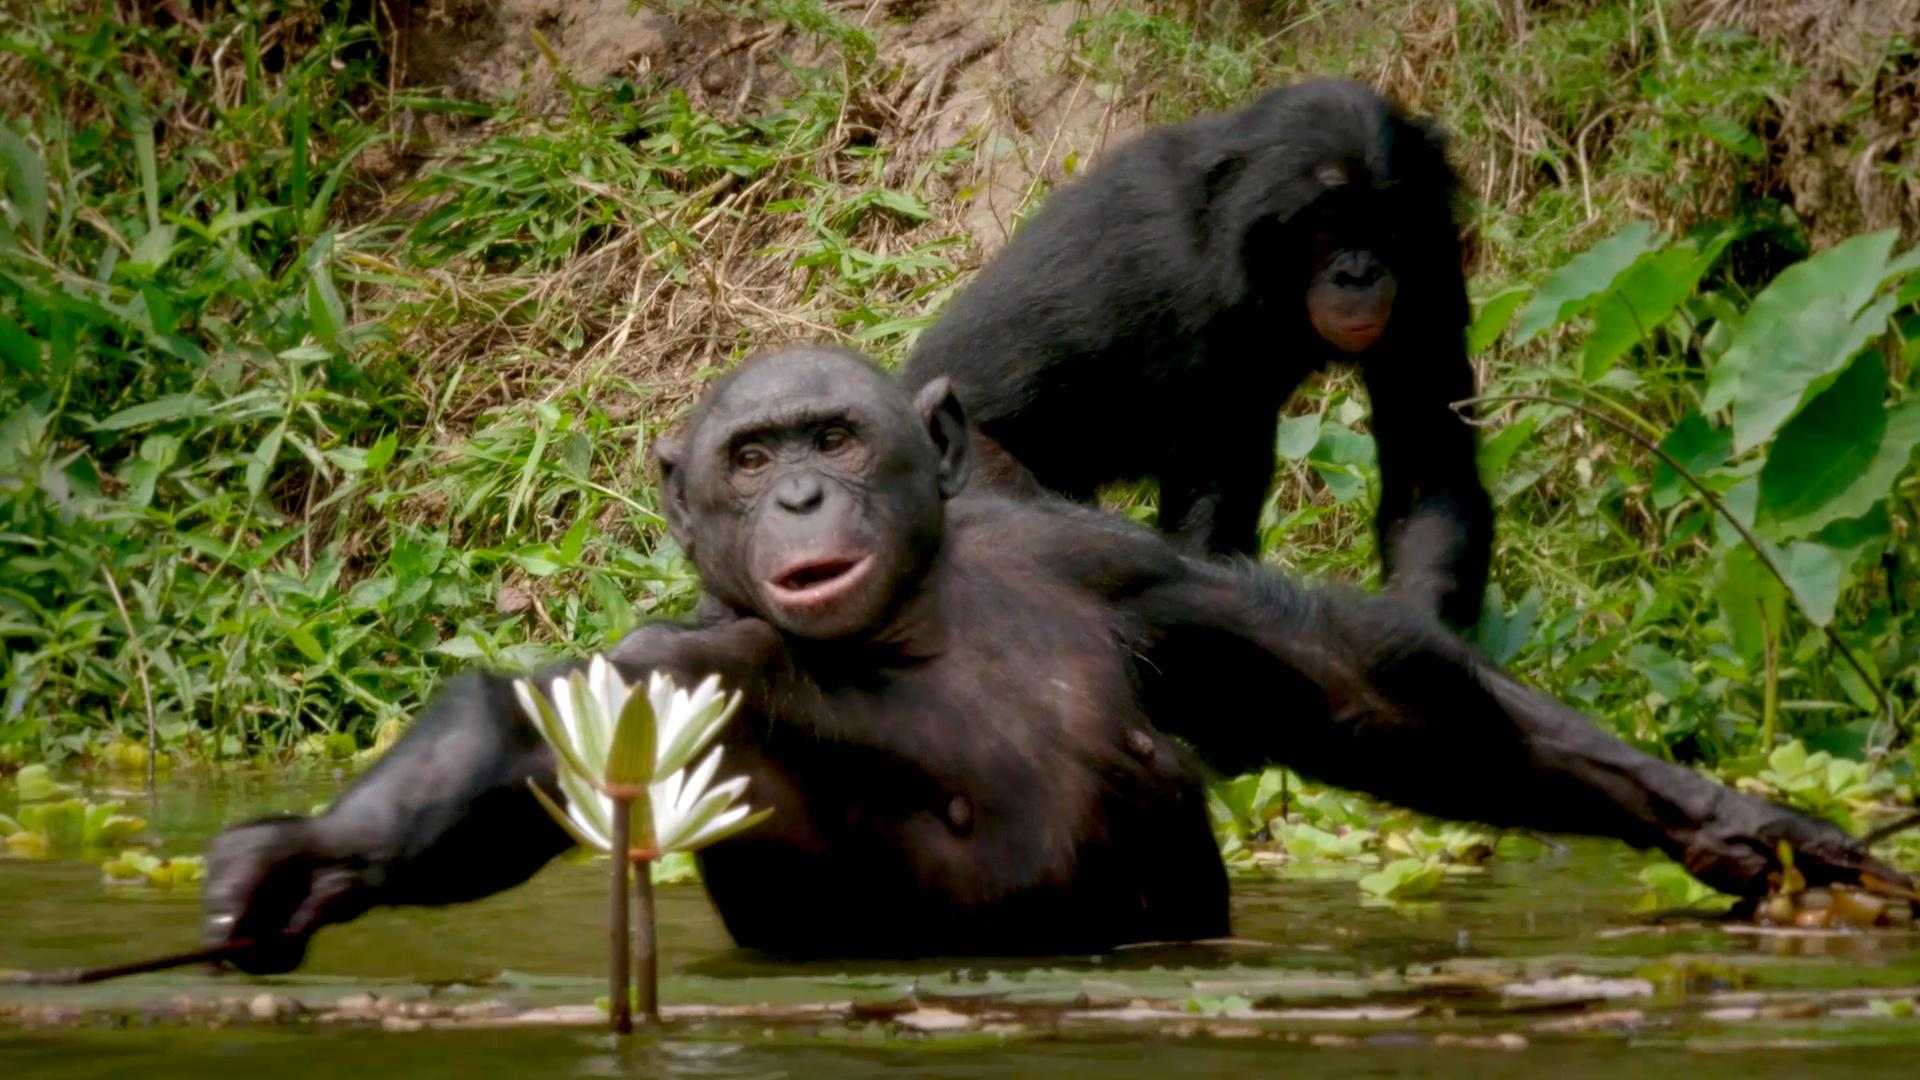 Bonobos, in the Congo, may help explain a critical moment in human evolution, when humans took their very first steps. The theory has everything to do with water.